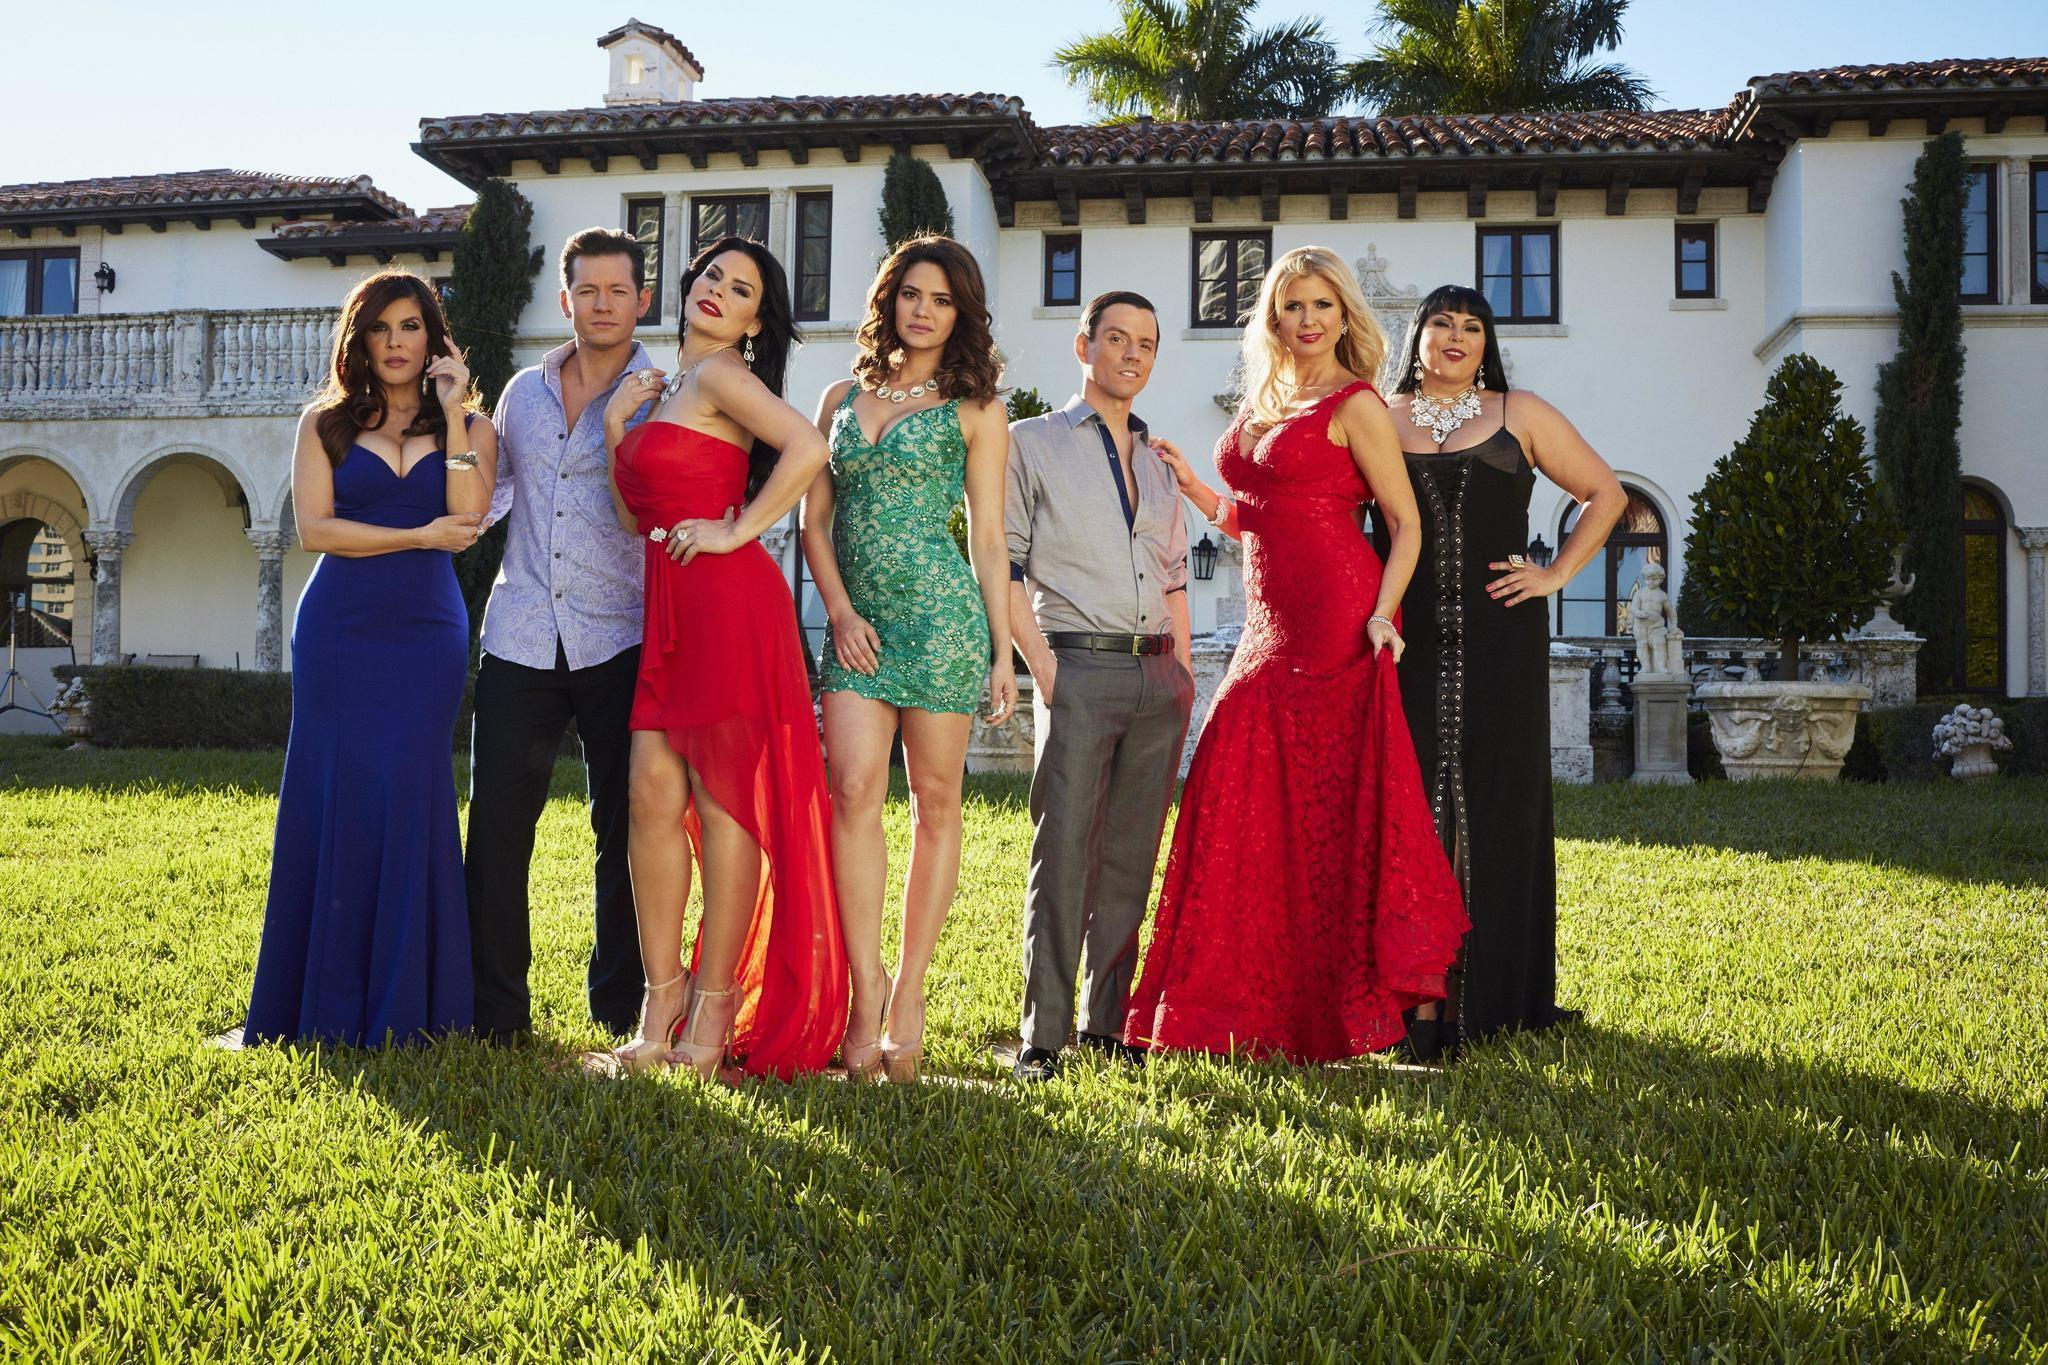 Que drama! Reality series 'My Life Is a Telenovela' debuts on WE tv - Sun Sentinel